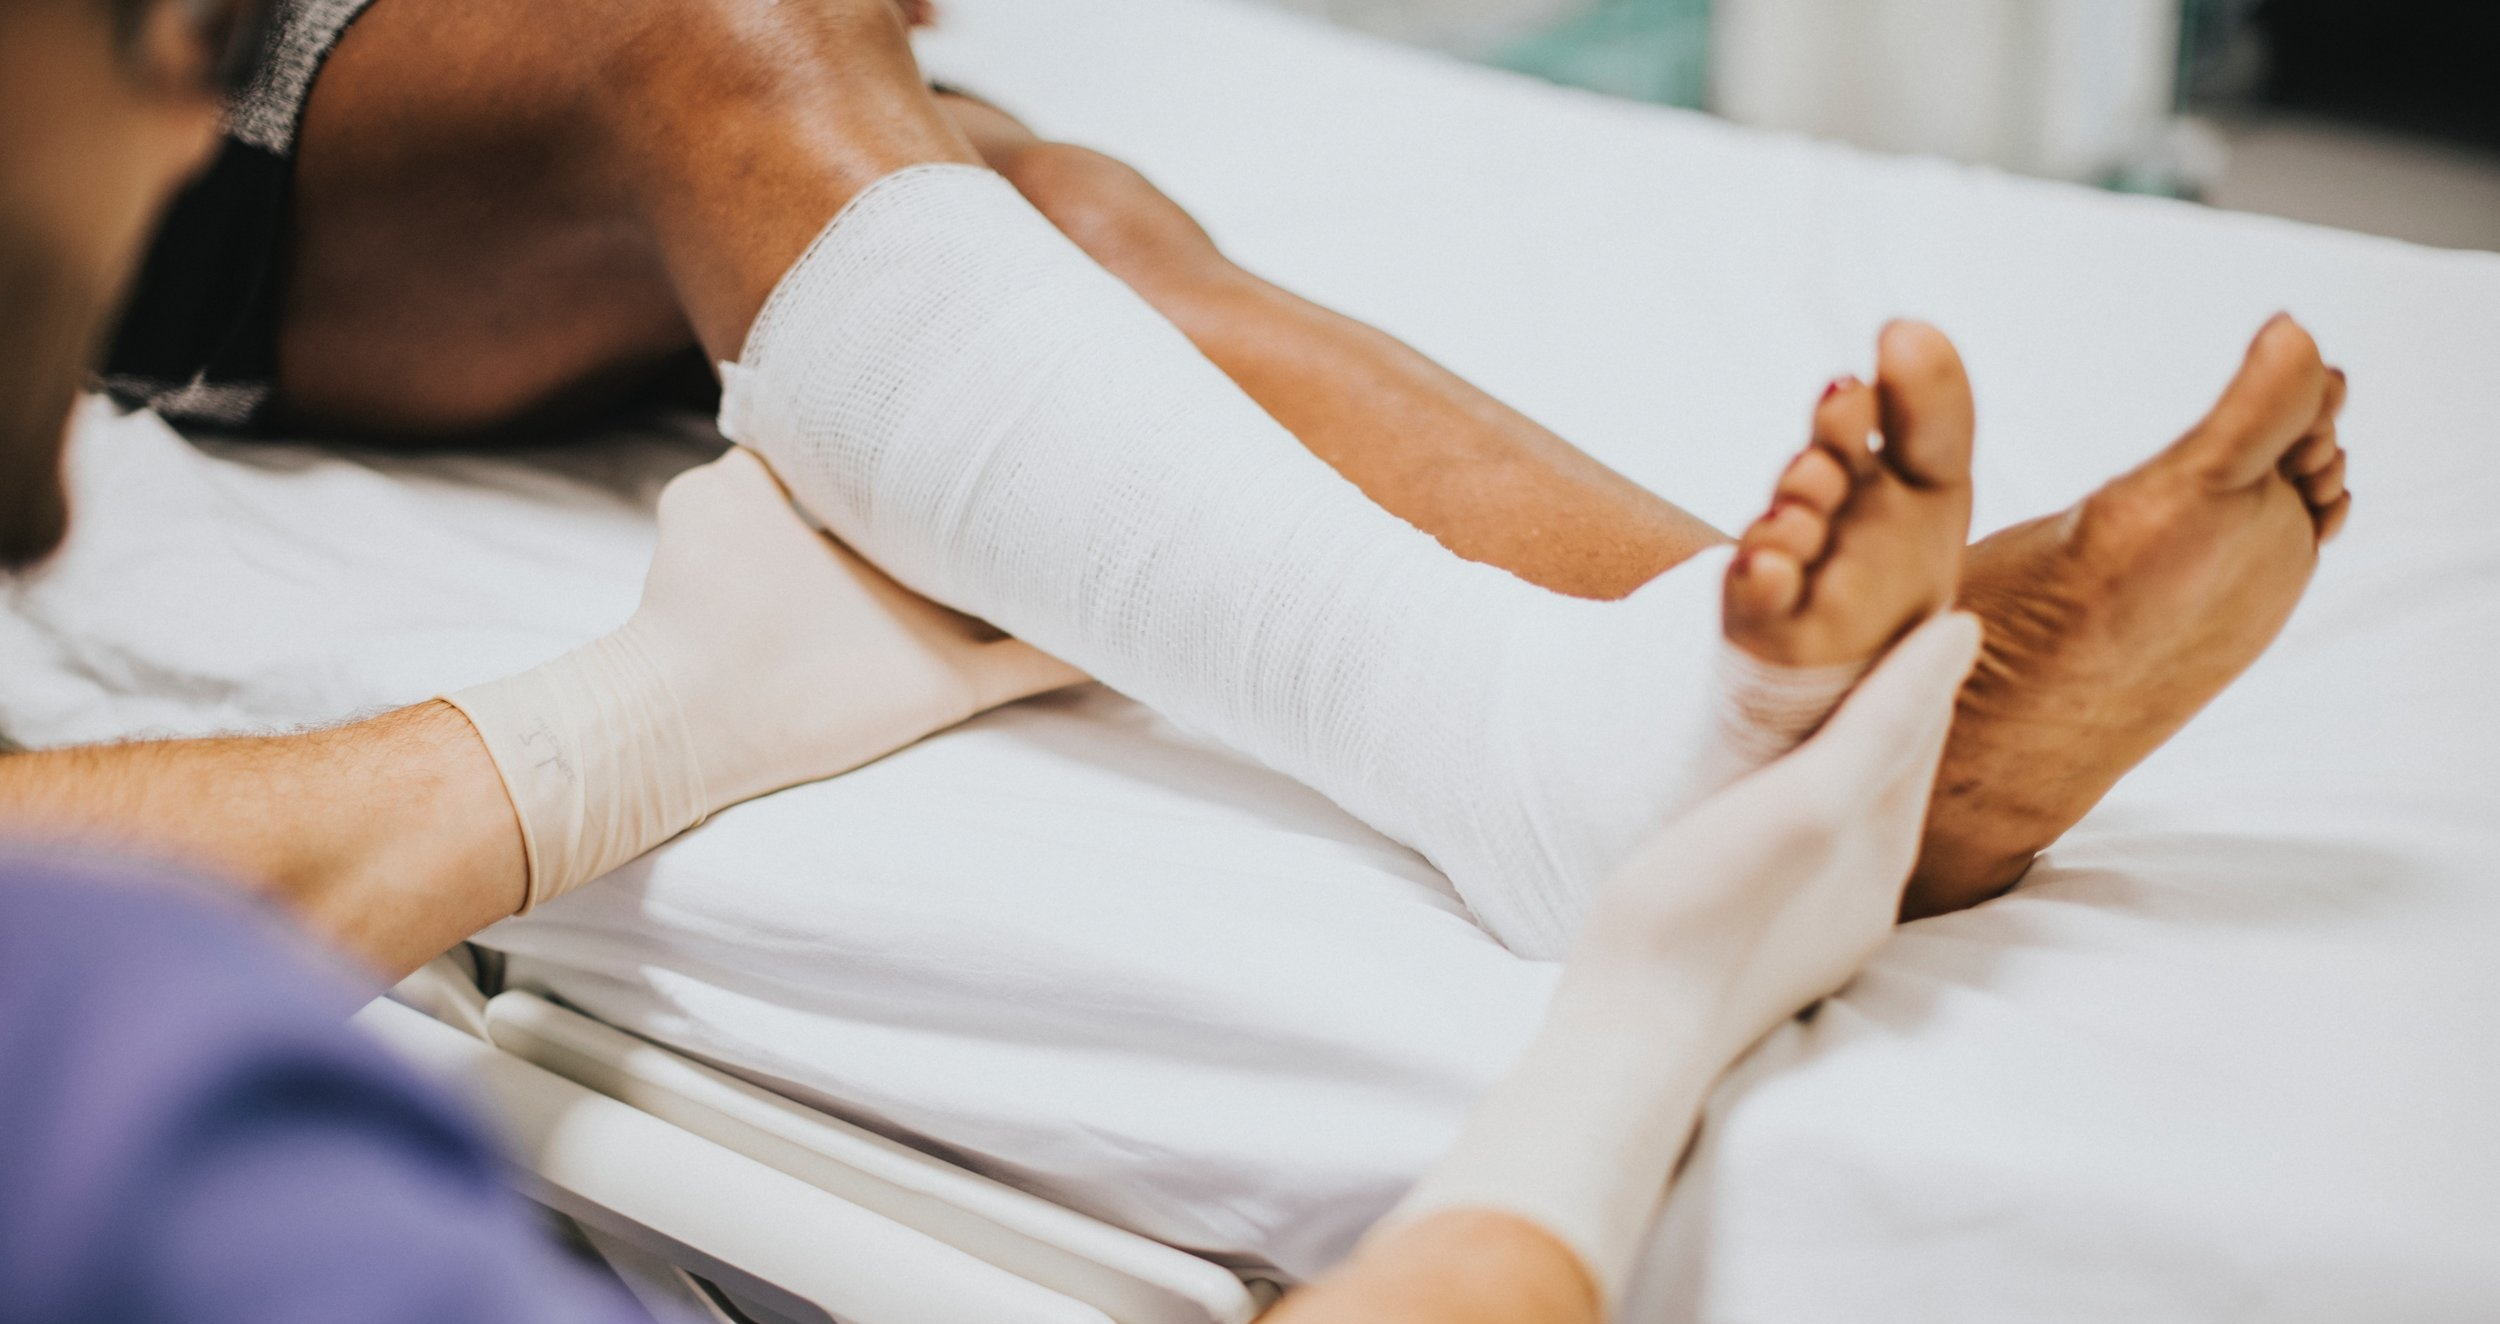 Medical provider assisting person on a hospital bed with a cast on their right leg.